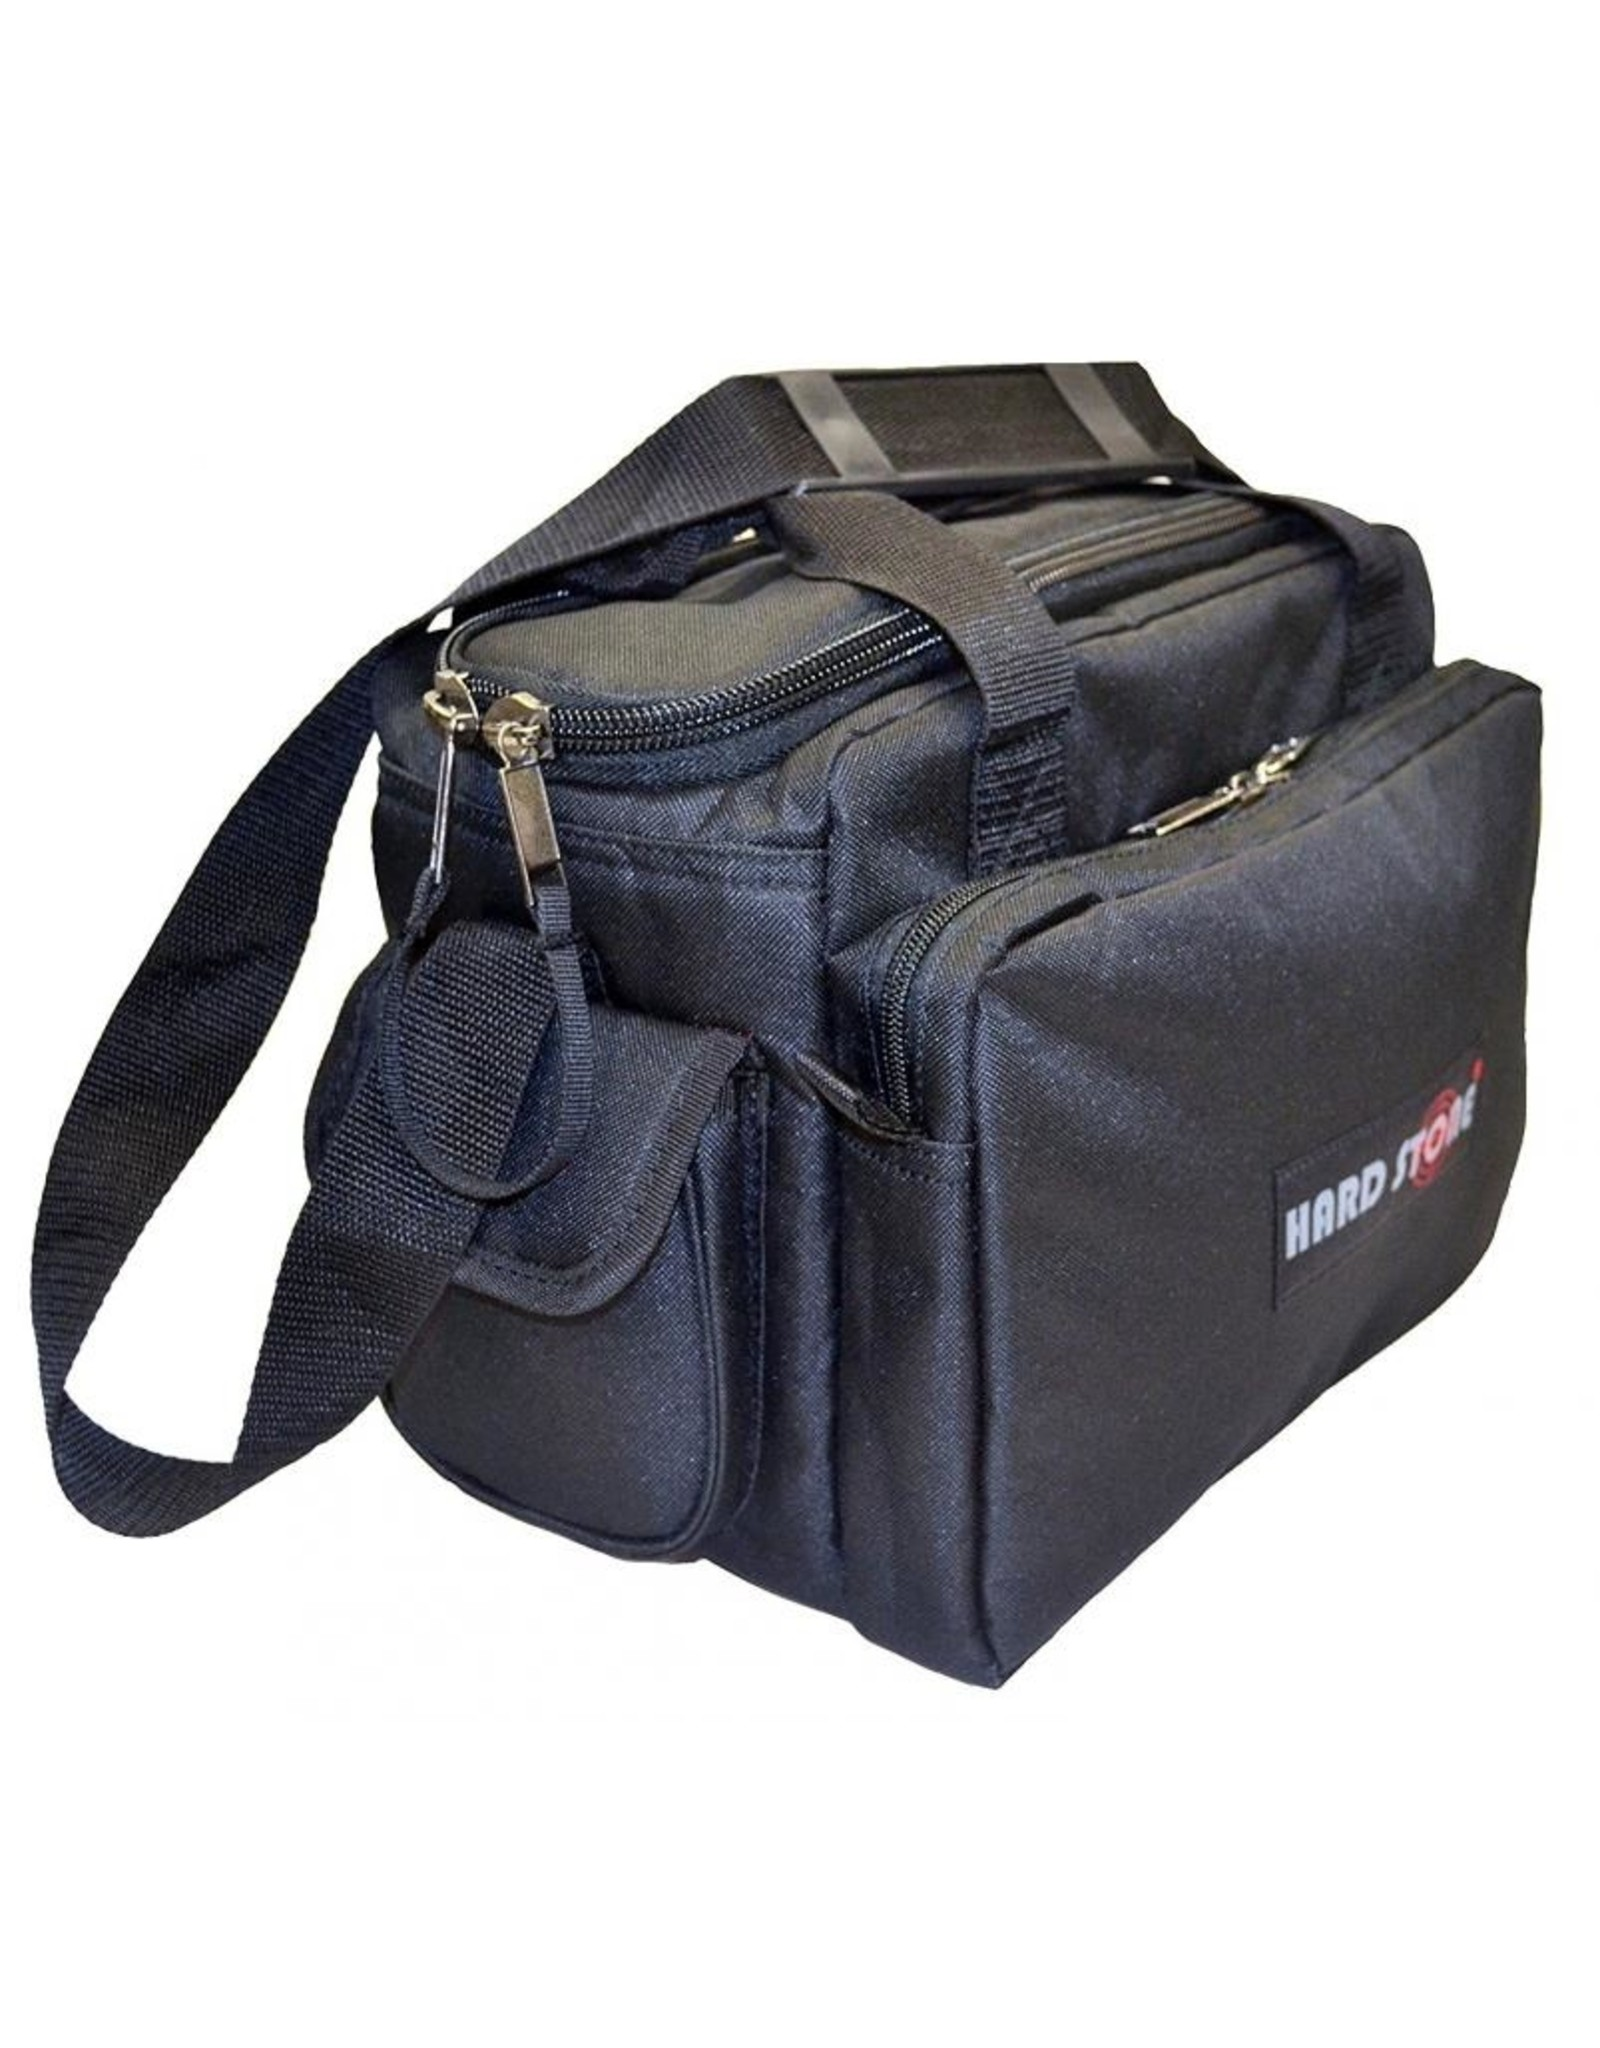 EXPLORER PADDED RANGE BAG